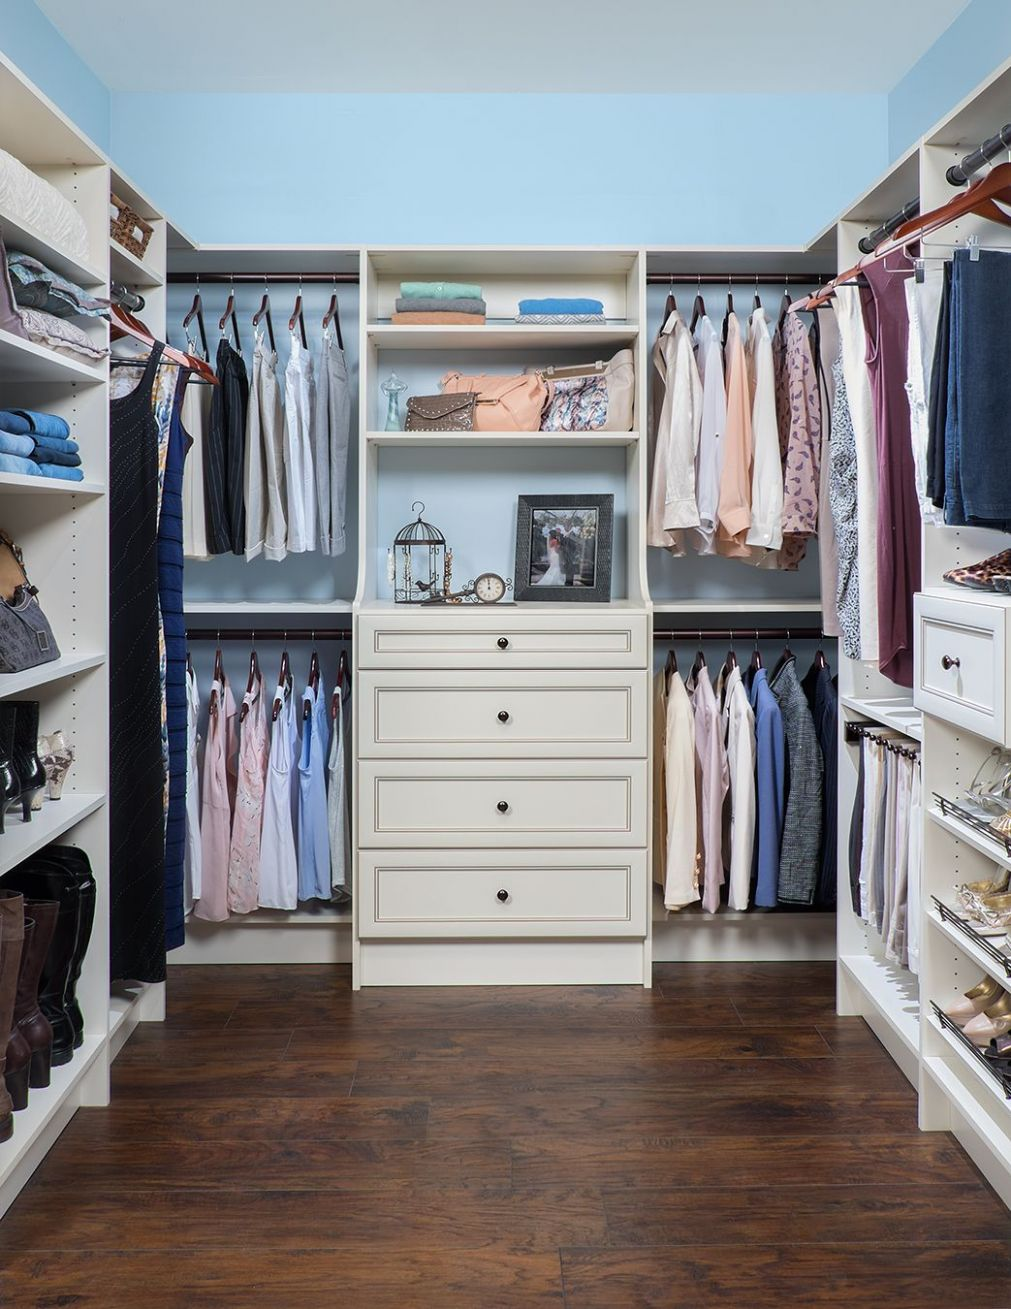 12 Small Walk in Closet Ideas and Organizer Designs (With images ..